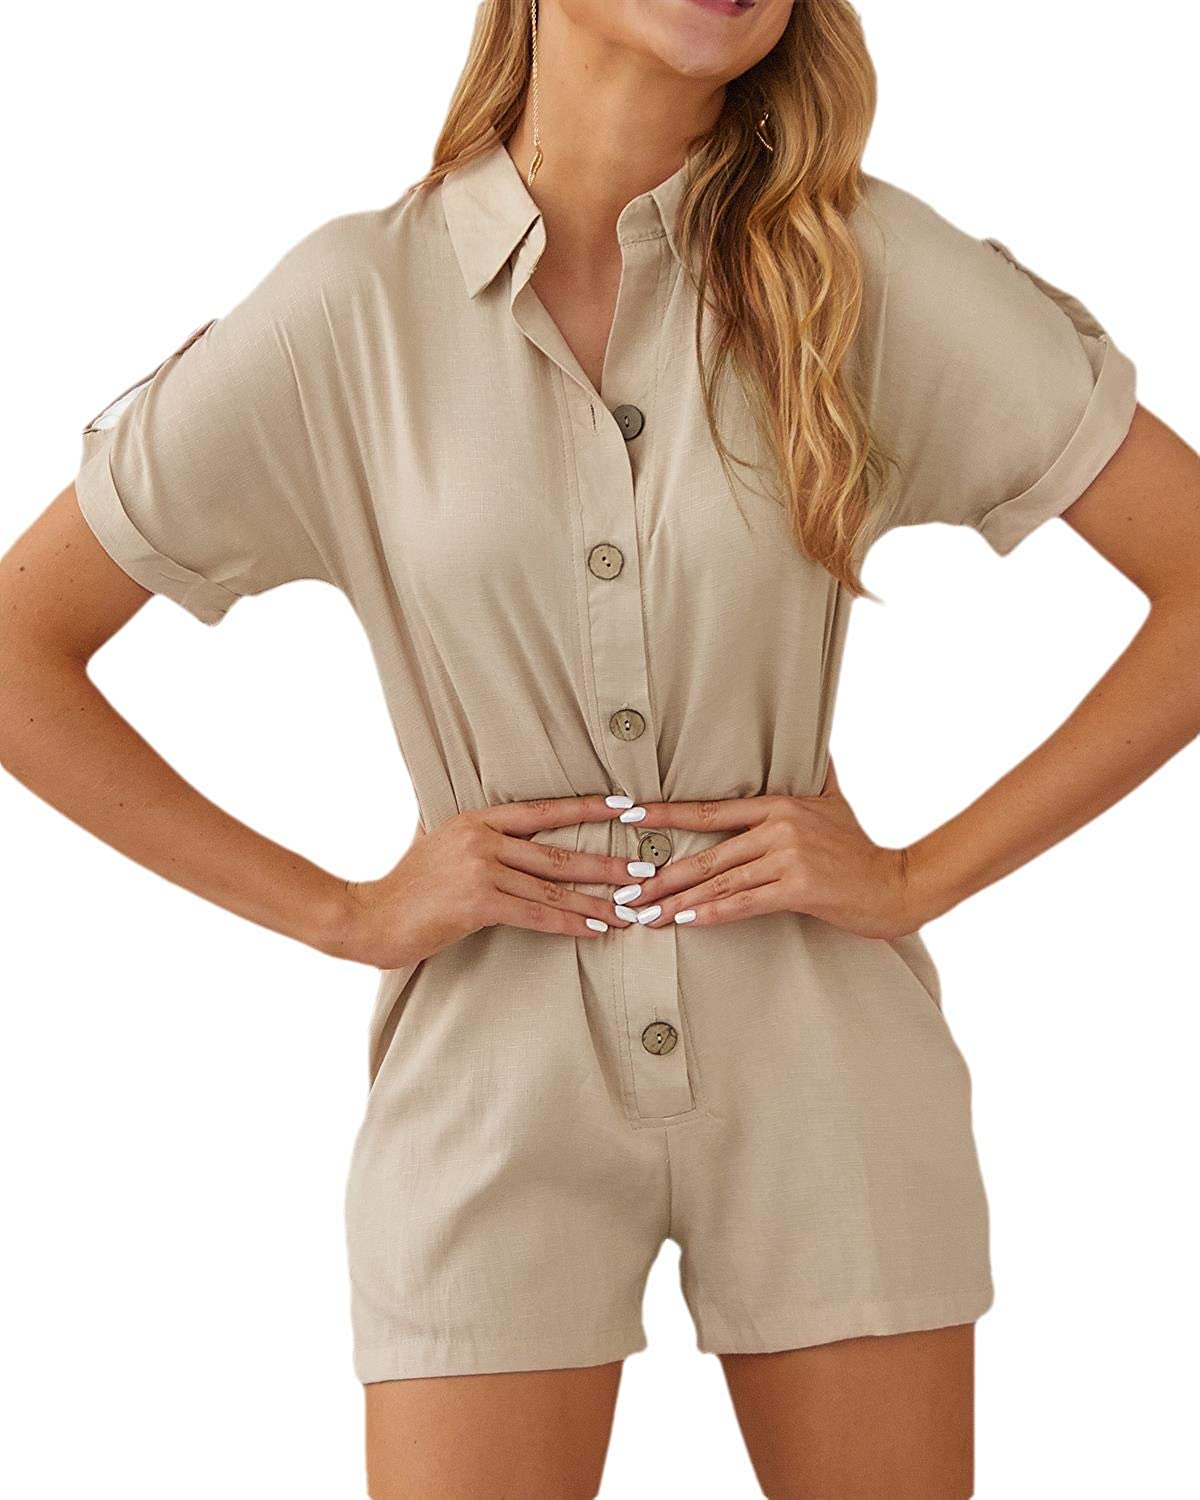 Zantt Women Casual V Neck Short Sleeve Button Up Romper Jumpsuits with Pockets